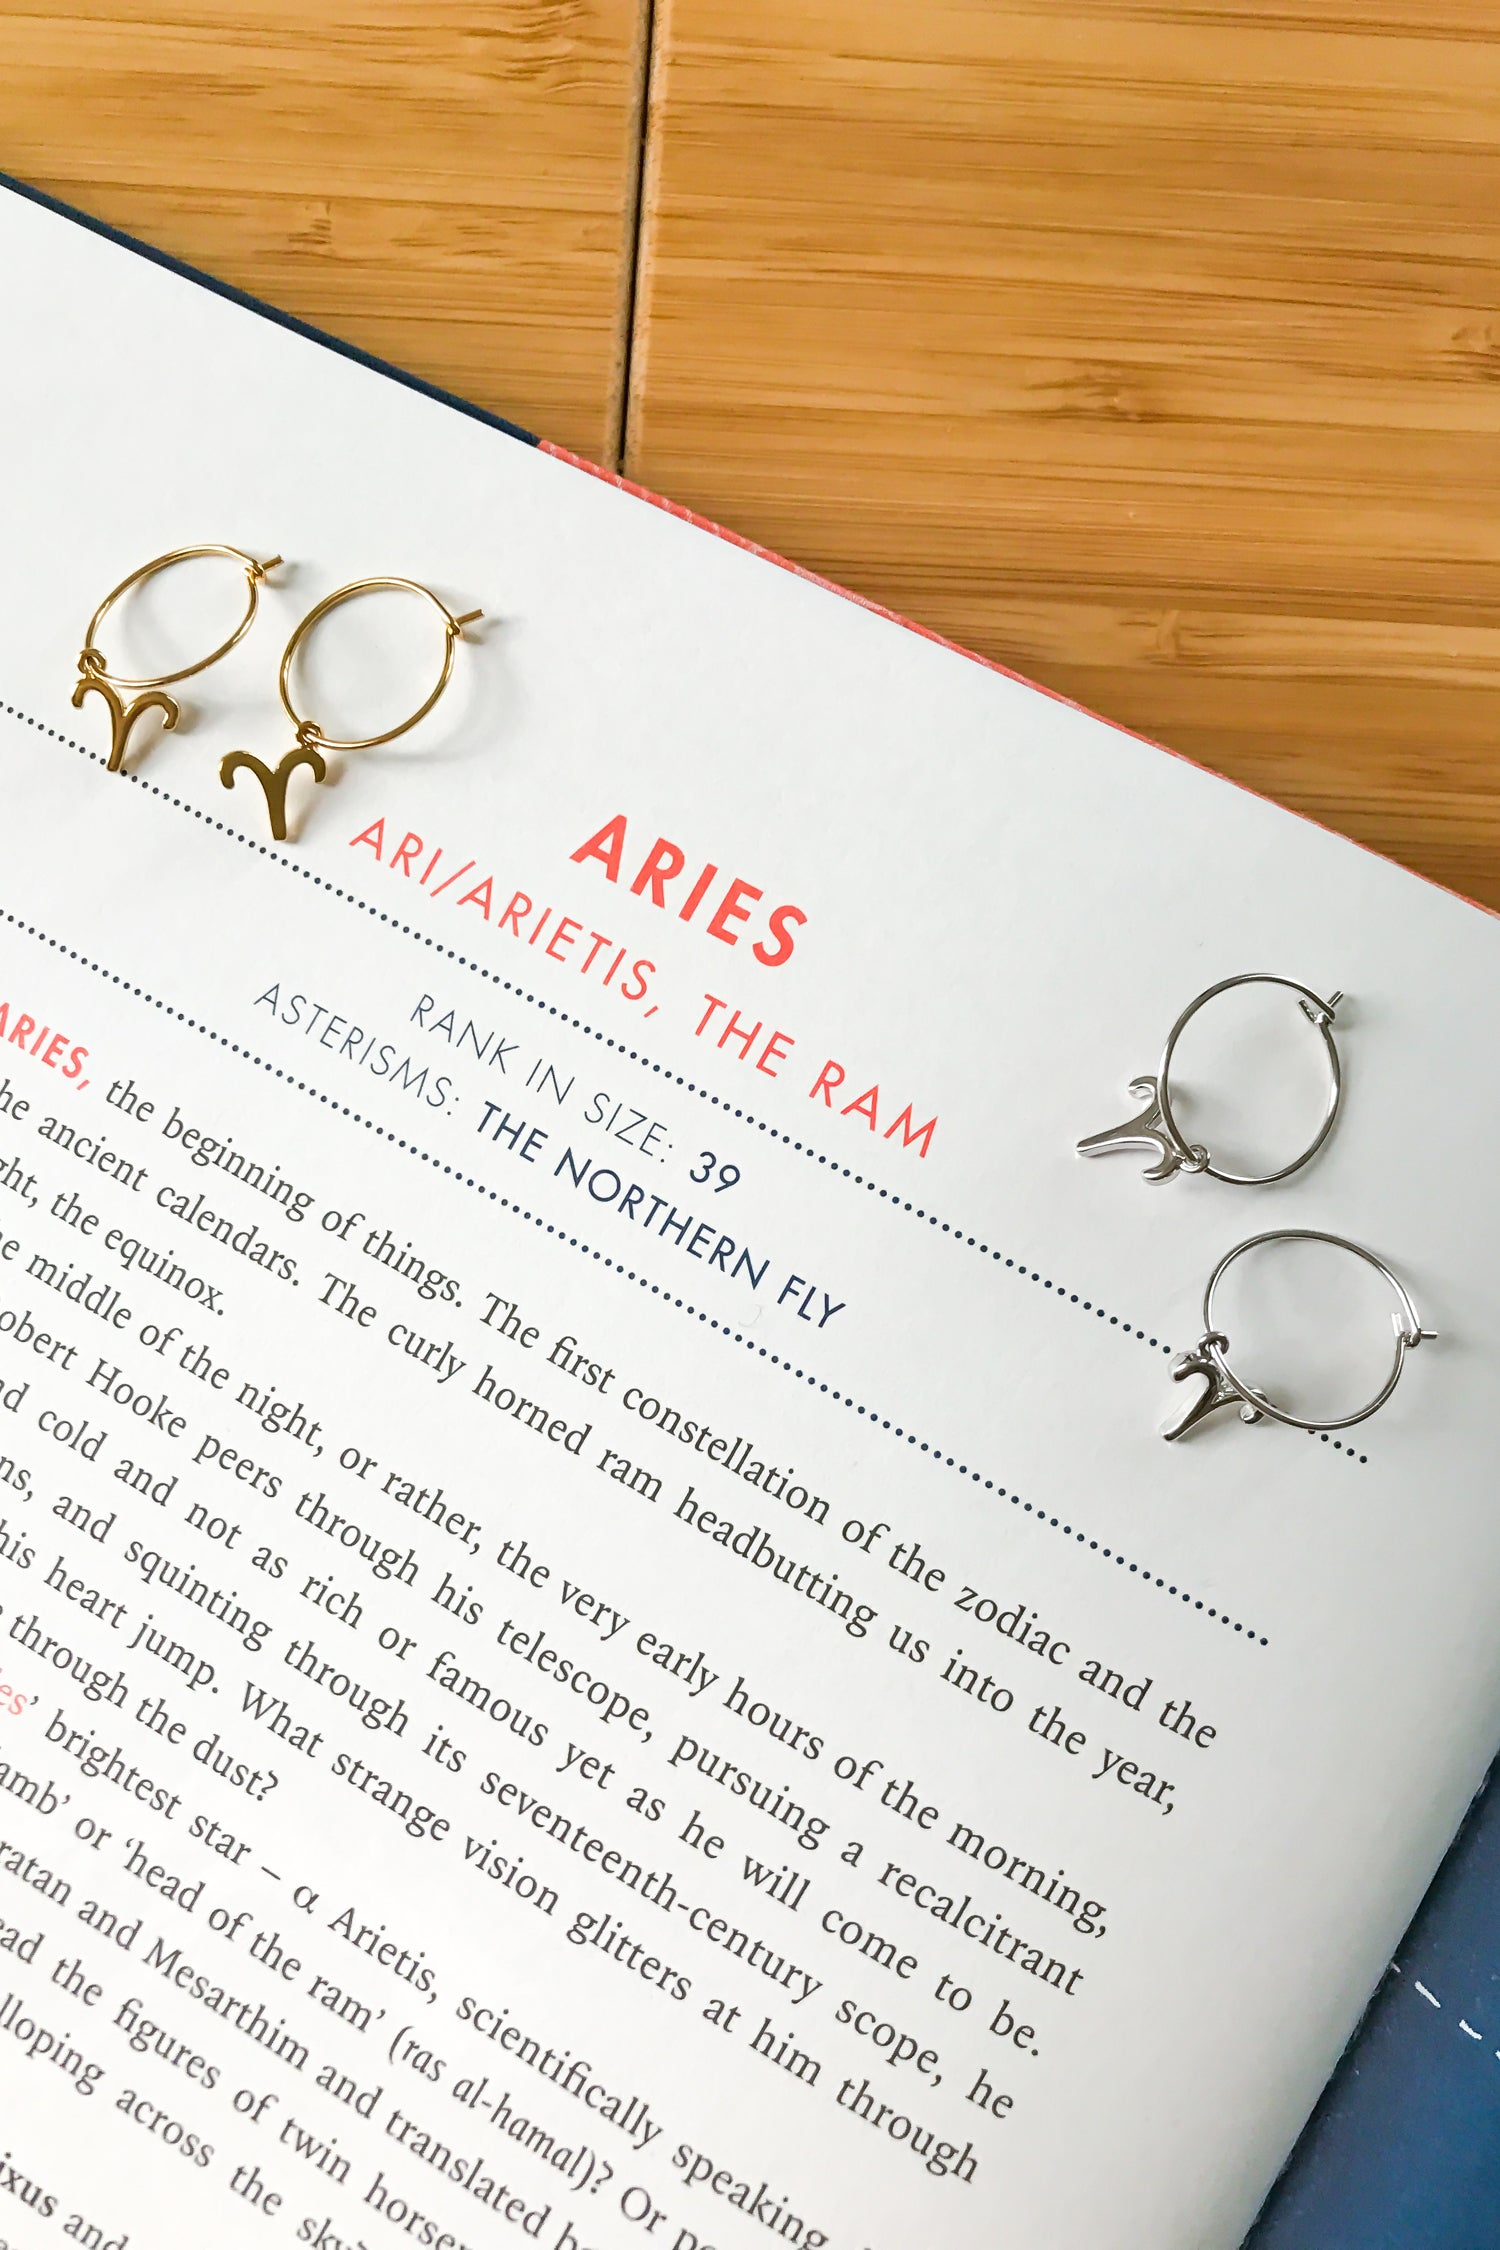 Aries mini hoop earrings